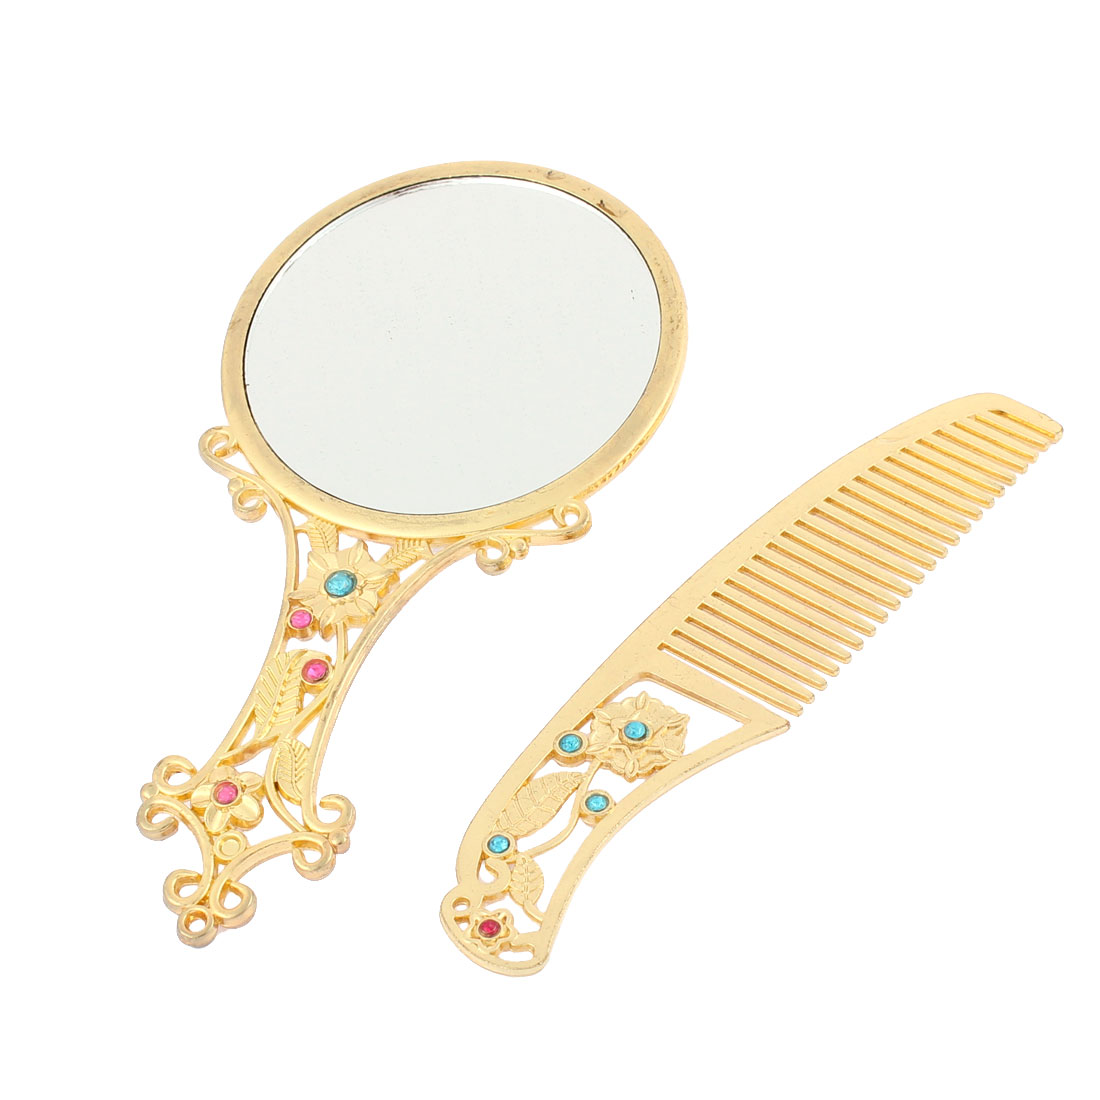 Flower Shaped Handheld Normal Beauty Makeup Cosmetic Compact Mirror Comb Set Gold Tone